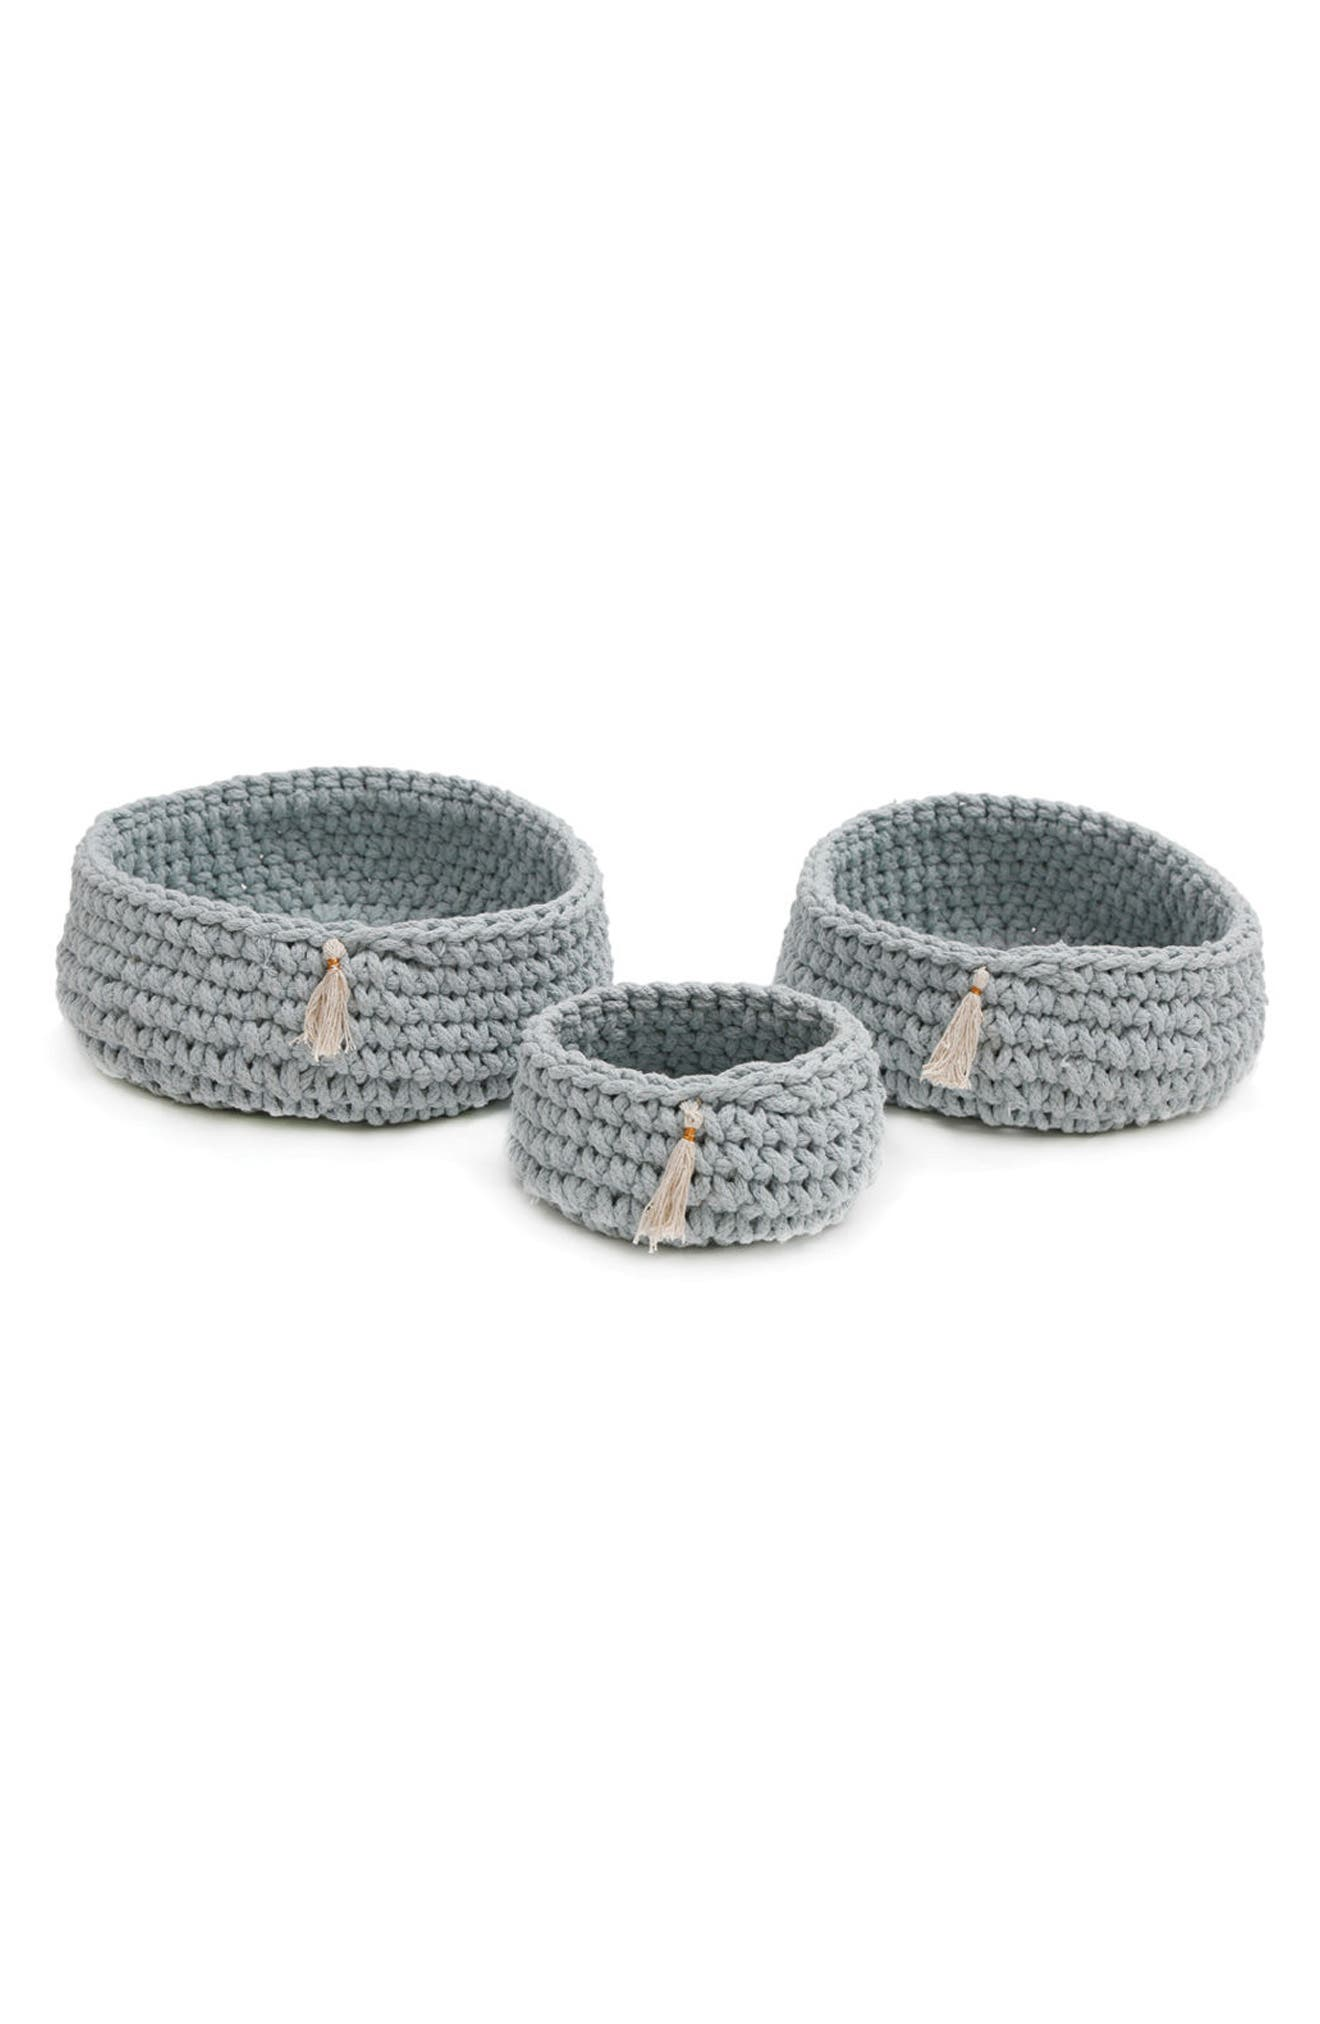 Pom Pom at Home Baya Set of 3 Baskets